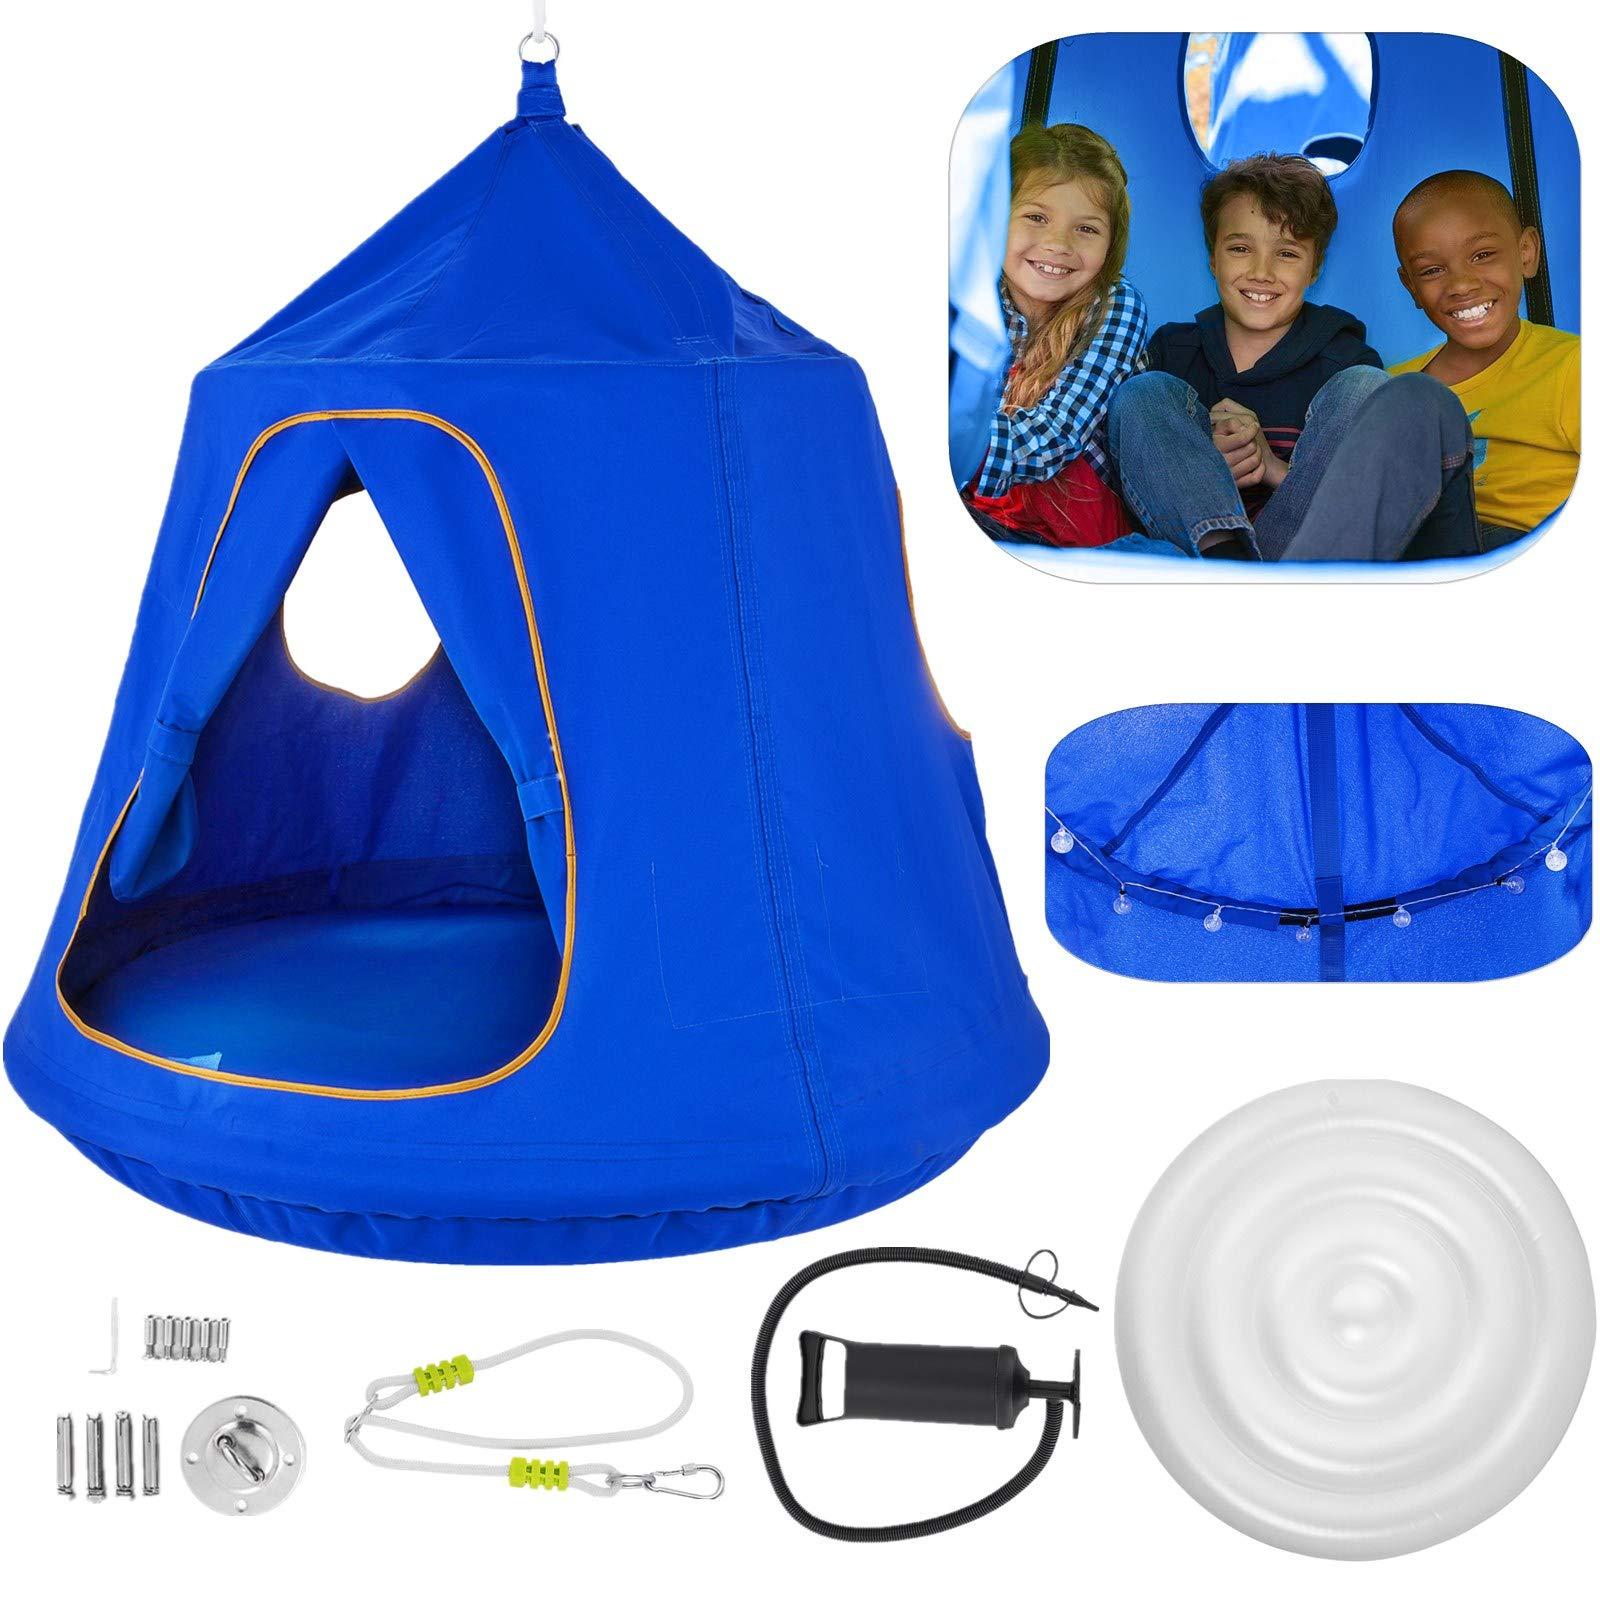 OrangeA Hanging Tree Tent Blue Hanging Tree Tent for Kids 46 H x 43.4 Diam Hanging Tree House Tent Waterproof Portable Indoor or Outdoor Use with Led Decoration Lights